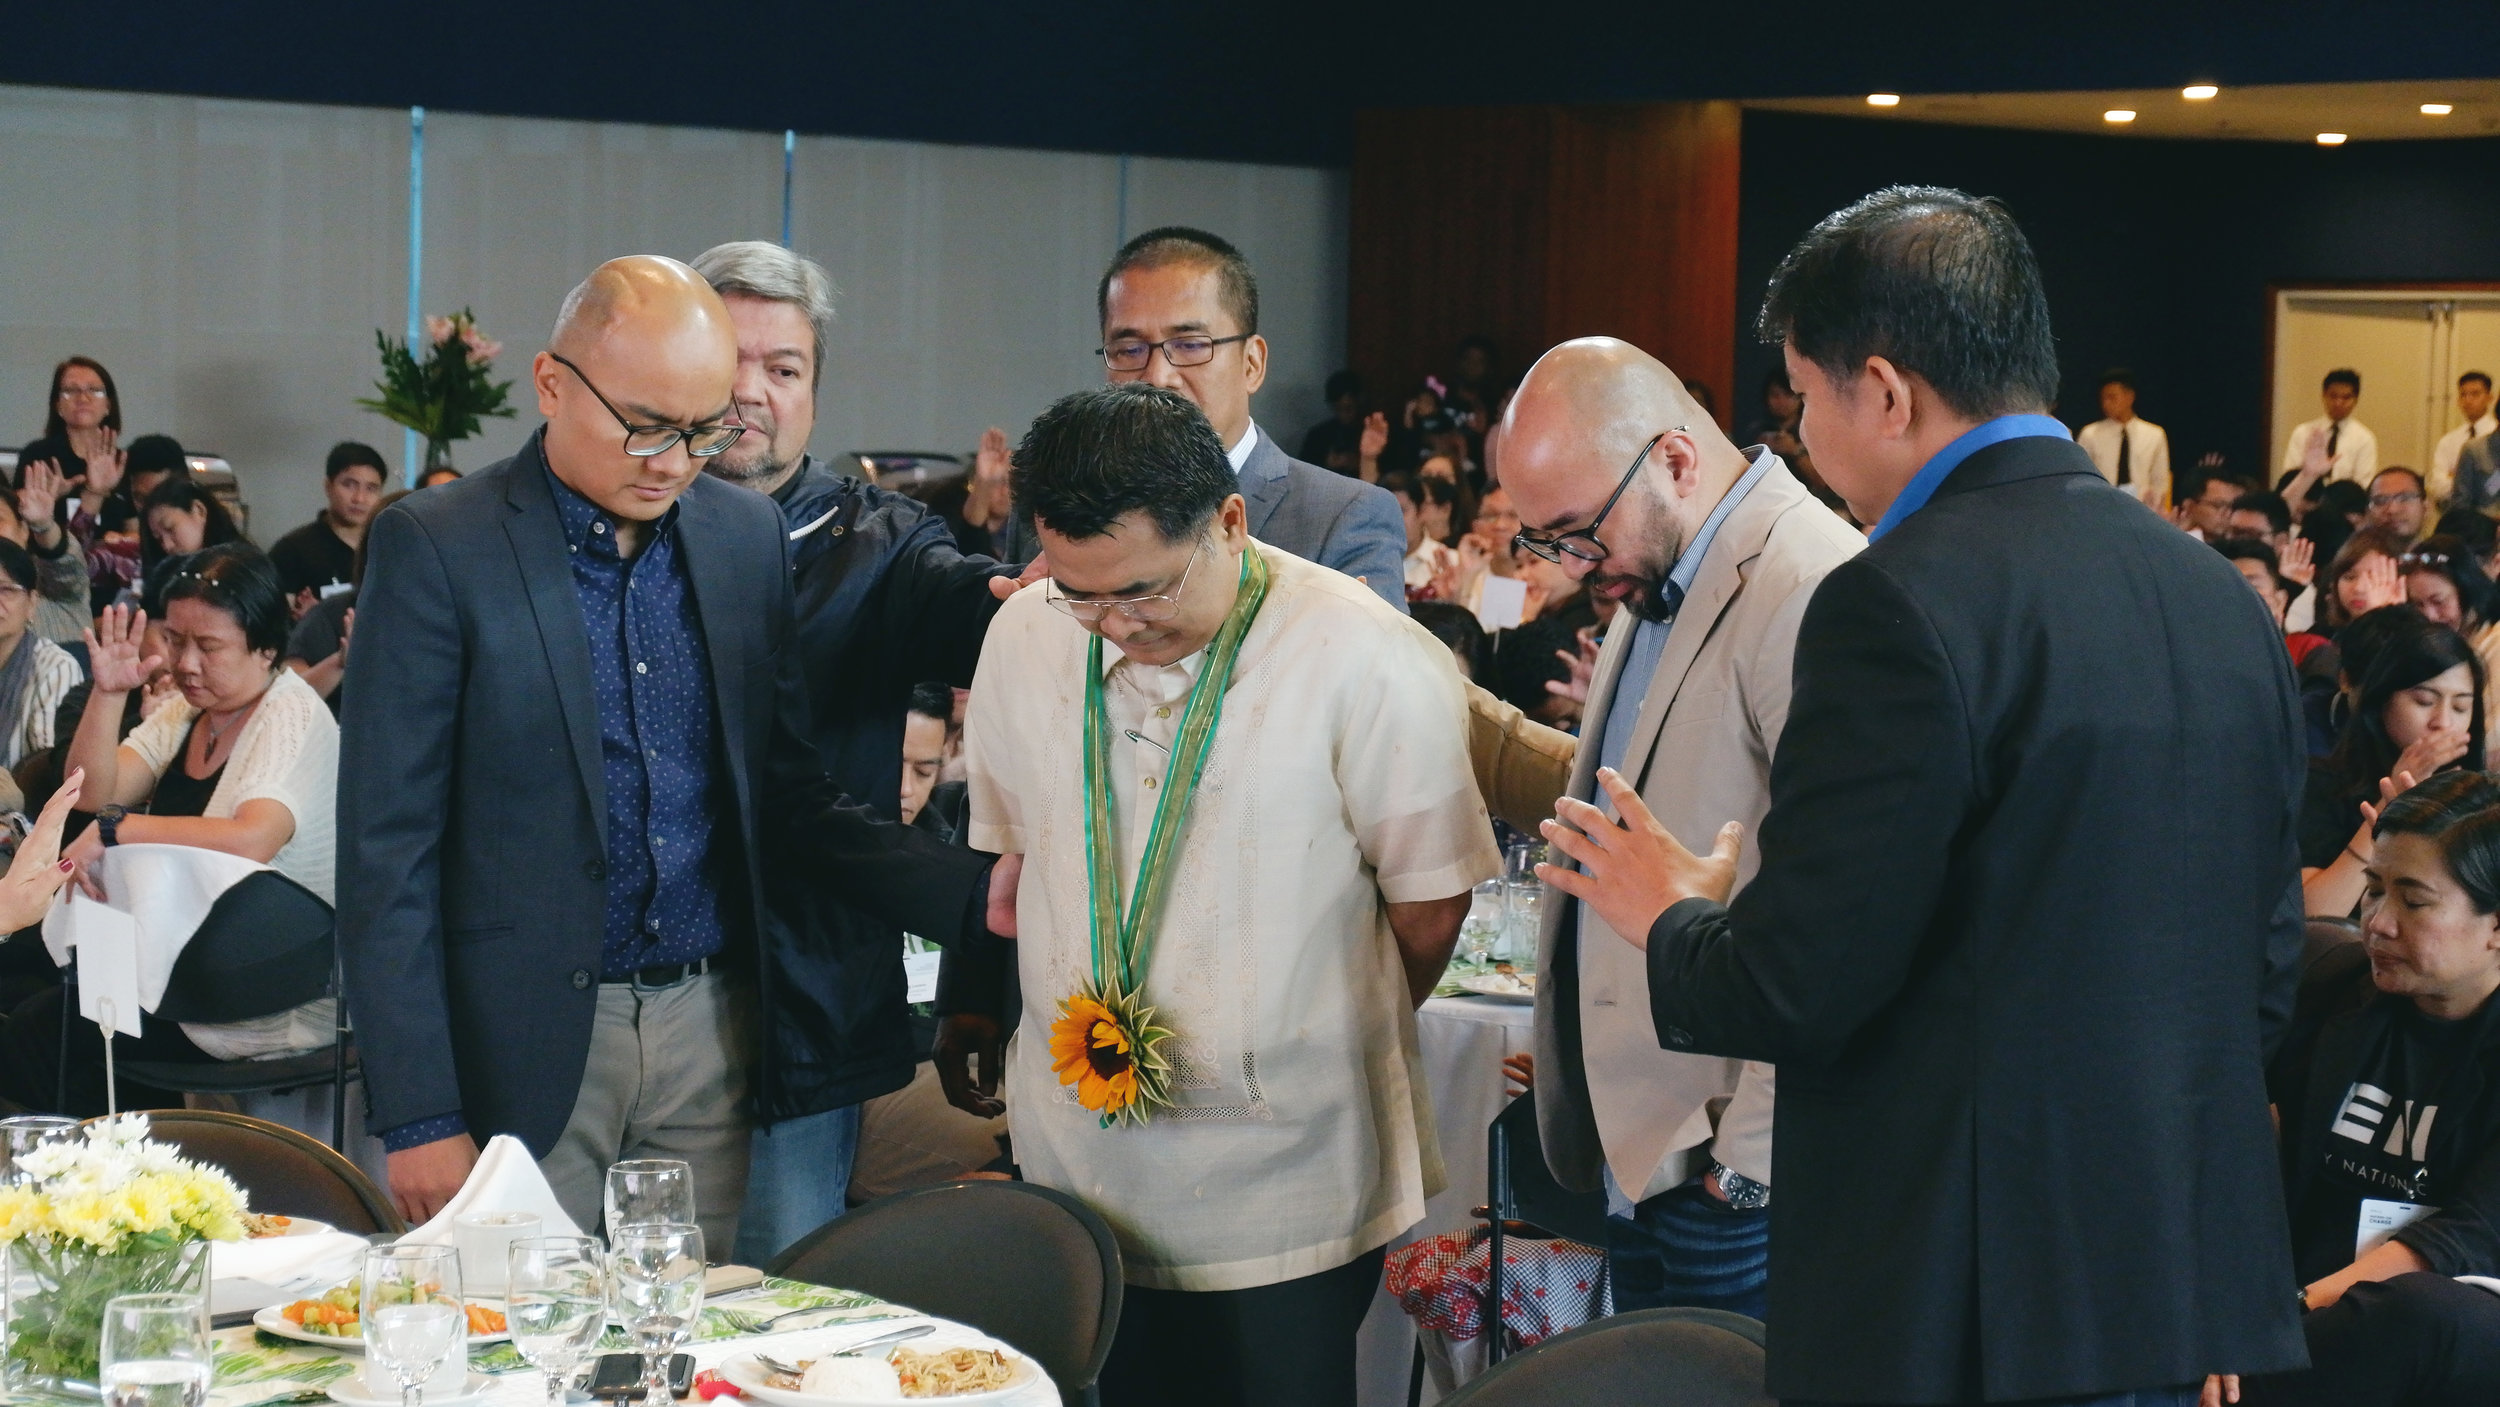 Leaders of Every Nation Philippines which Real LIFE belongs to praying for Usec. Umali and DepEd.